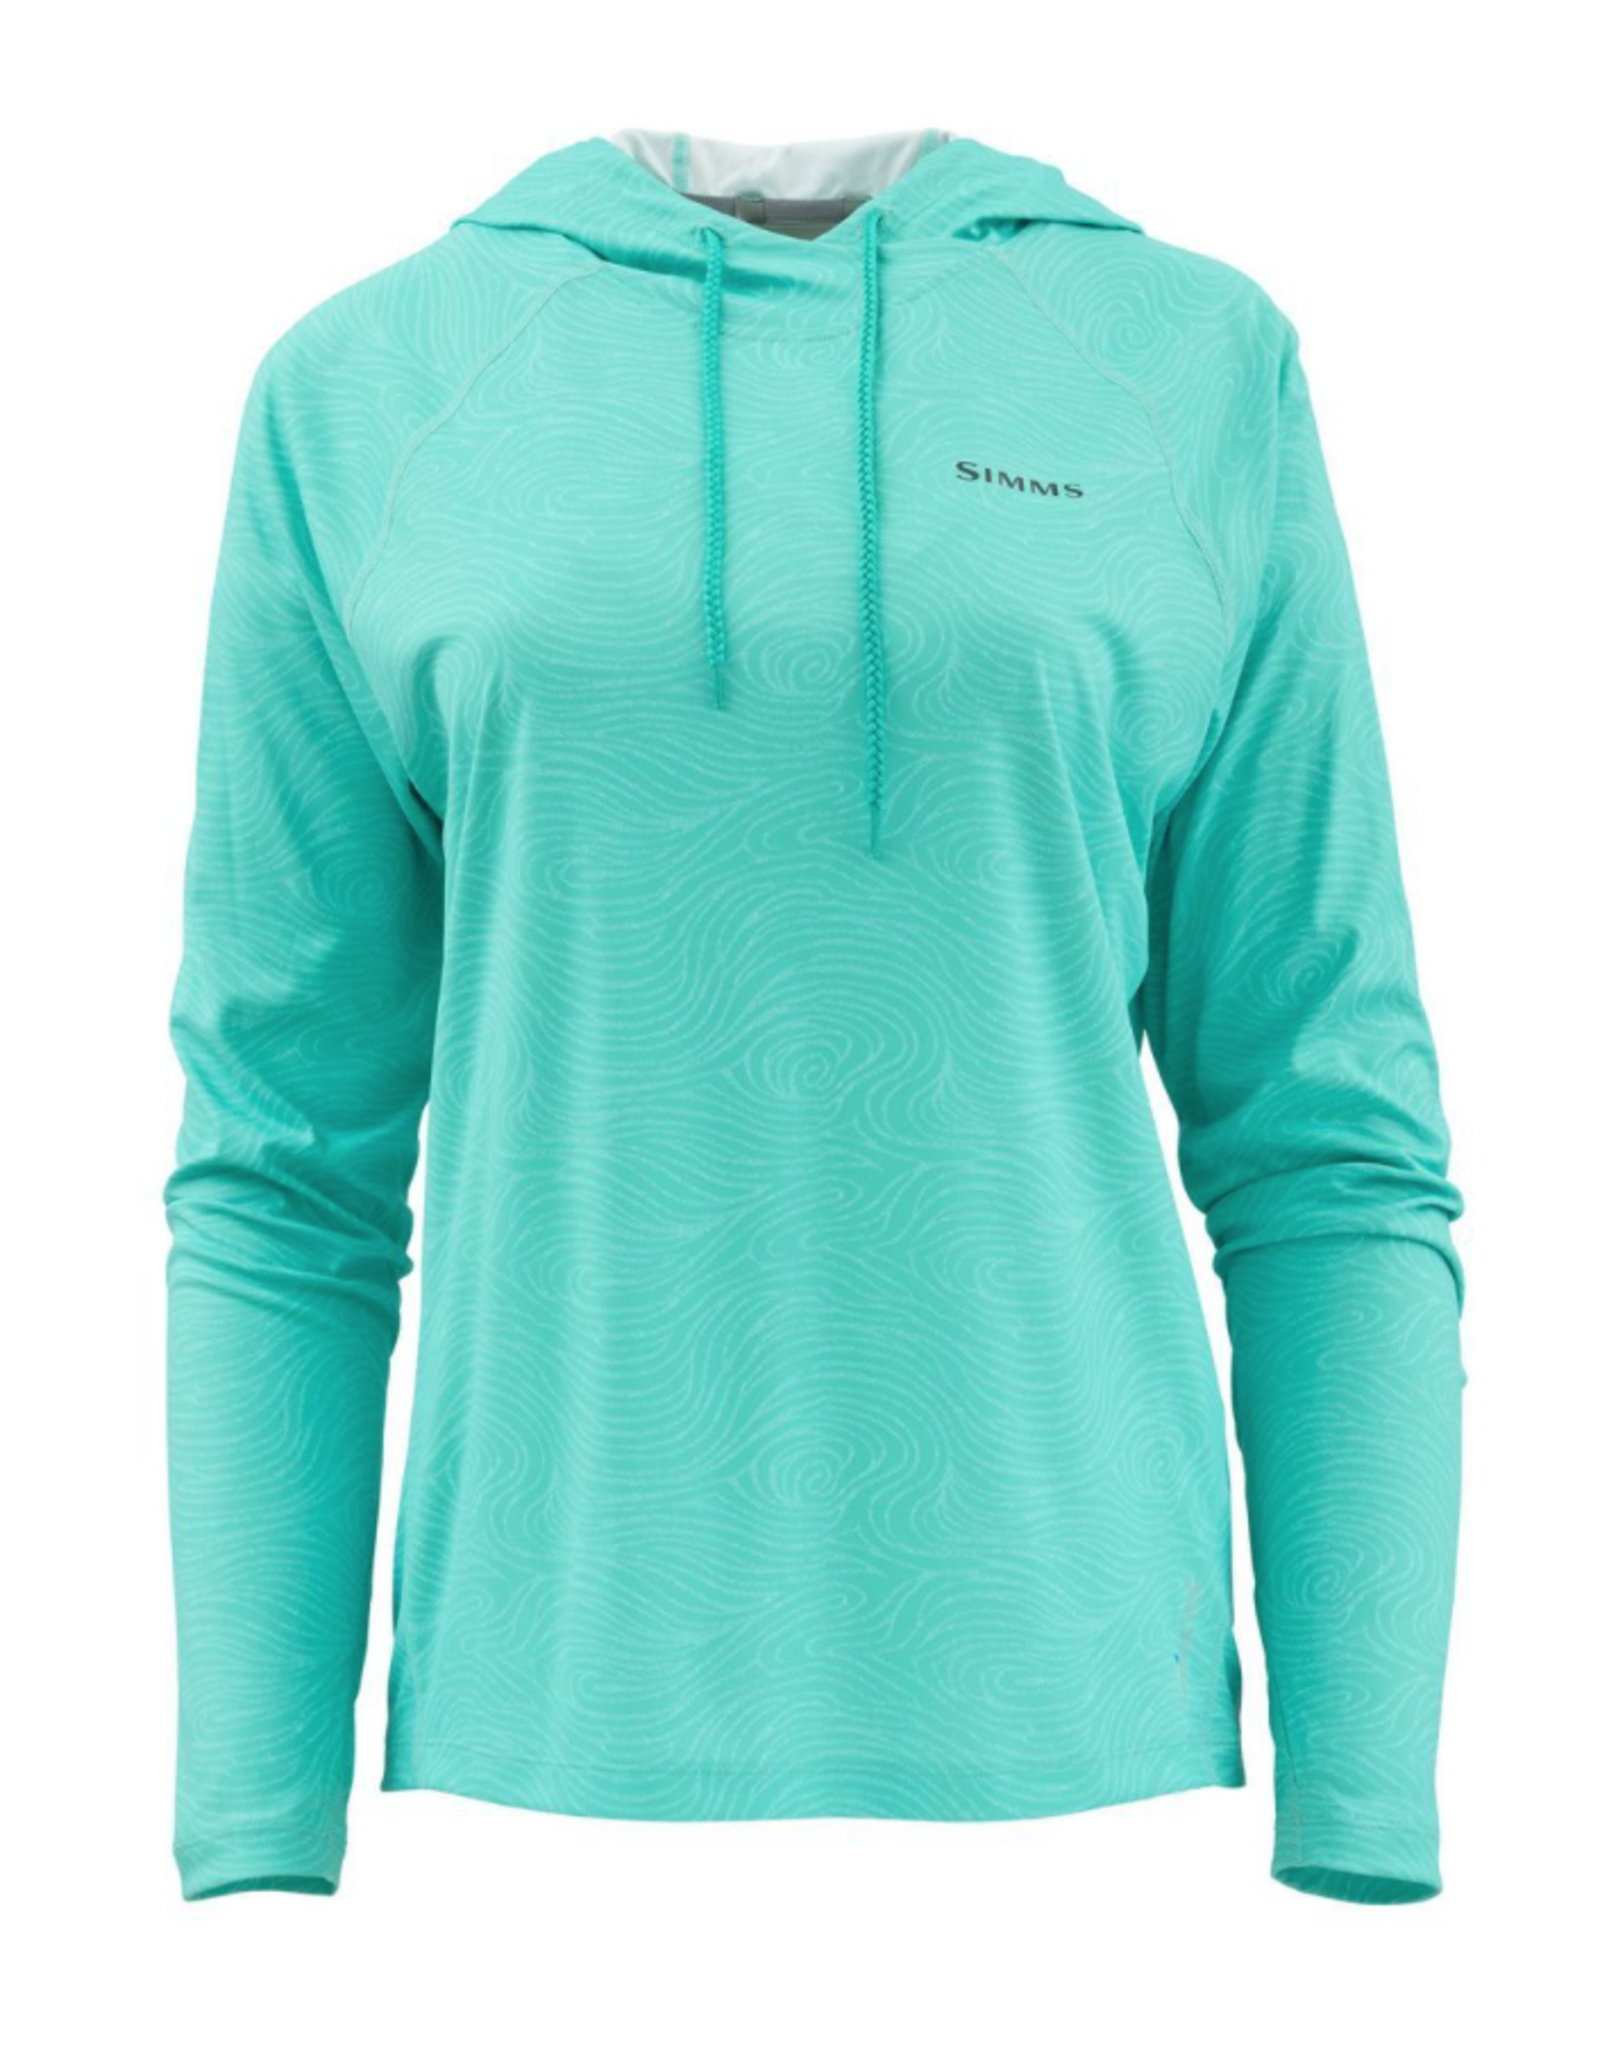 A fashionable print hoodie that wicks moisture and provides sun protection.